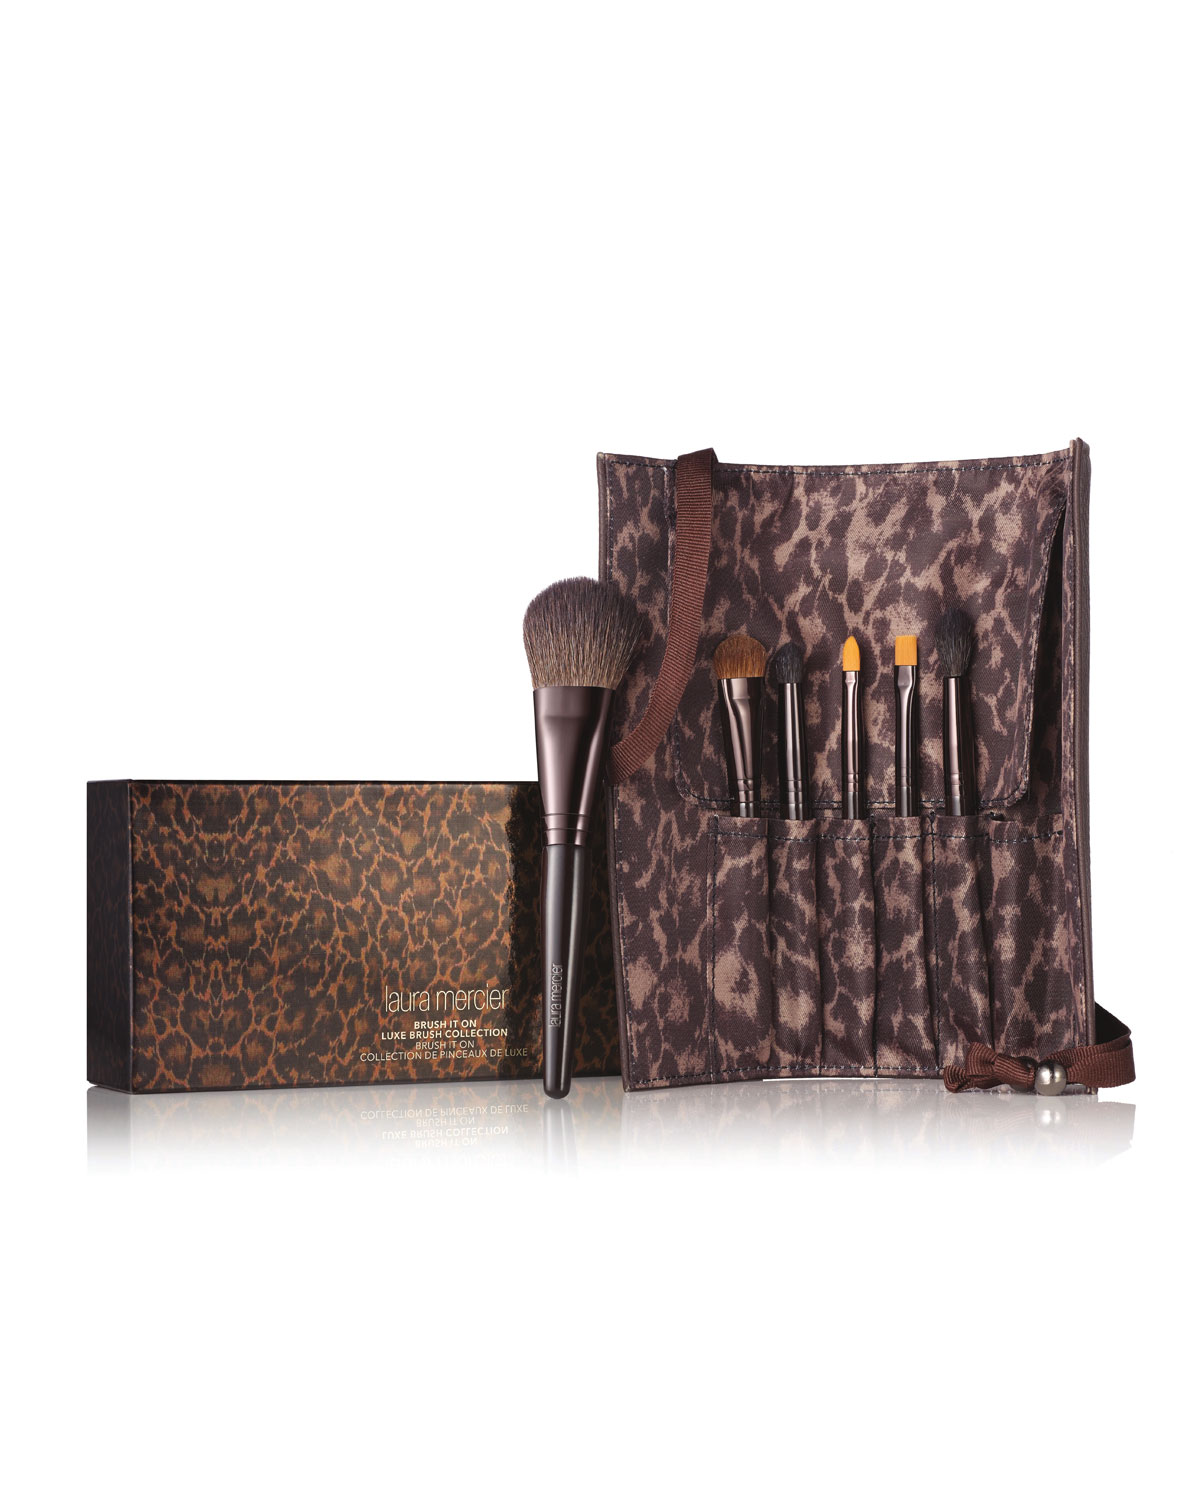 Limited Edition Brush It On Luxe Brush Collection ($194 Value)